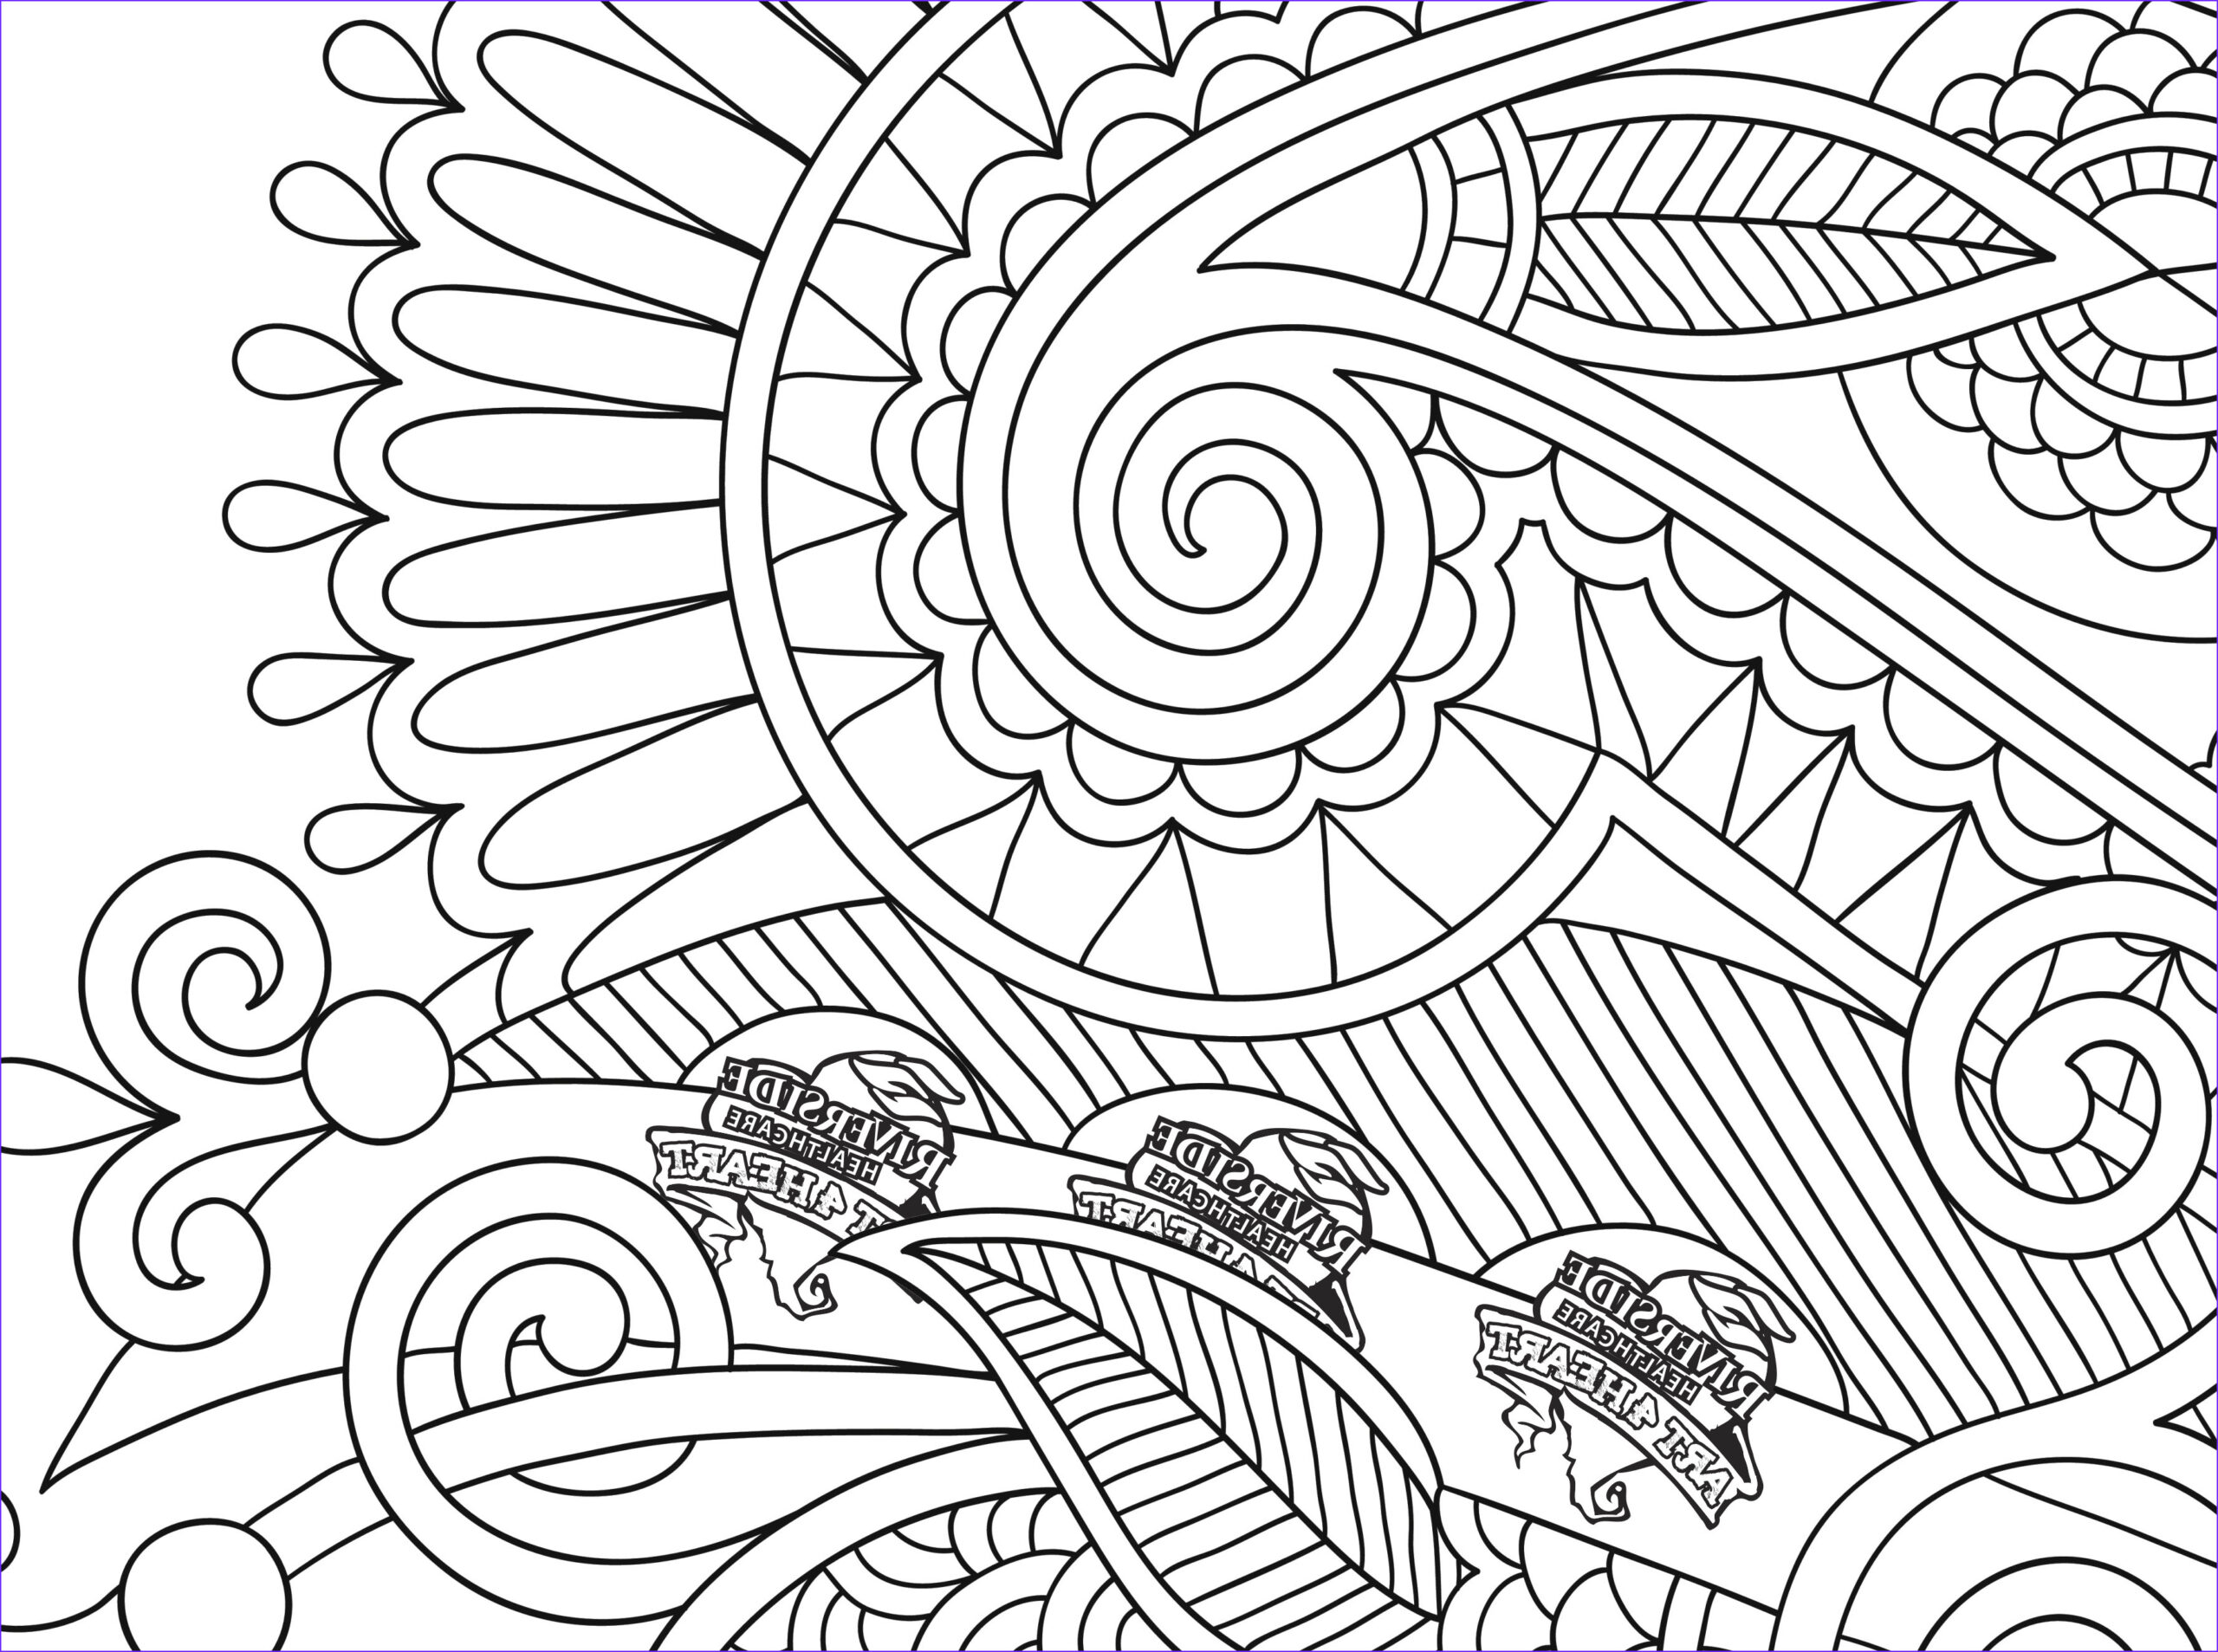 Unique Coloring Pages Beautiful Collection Healthcurrents Printable Coloring Pages